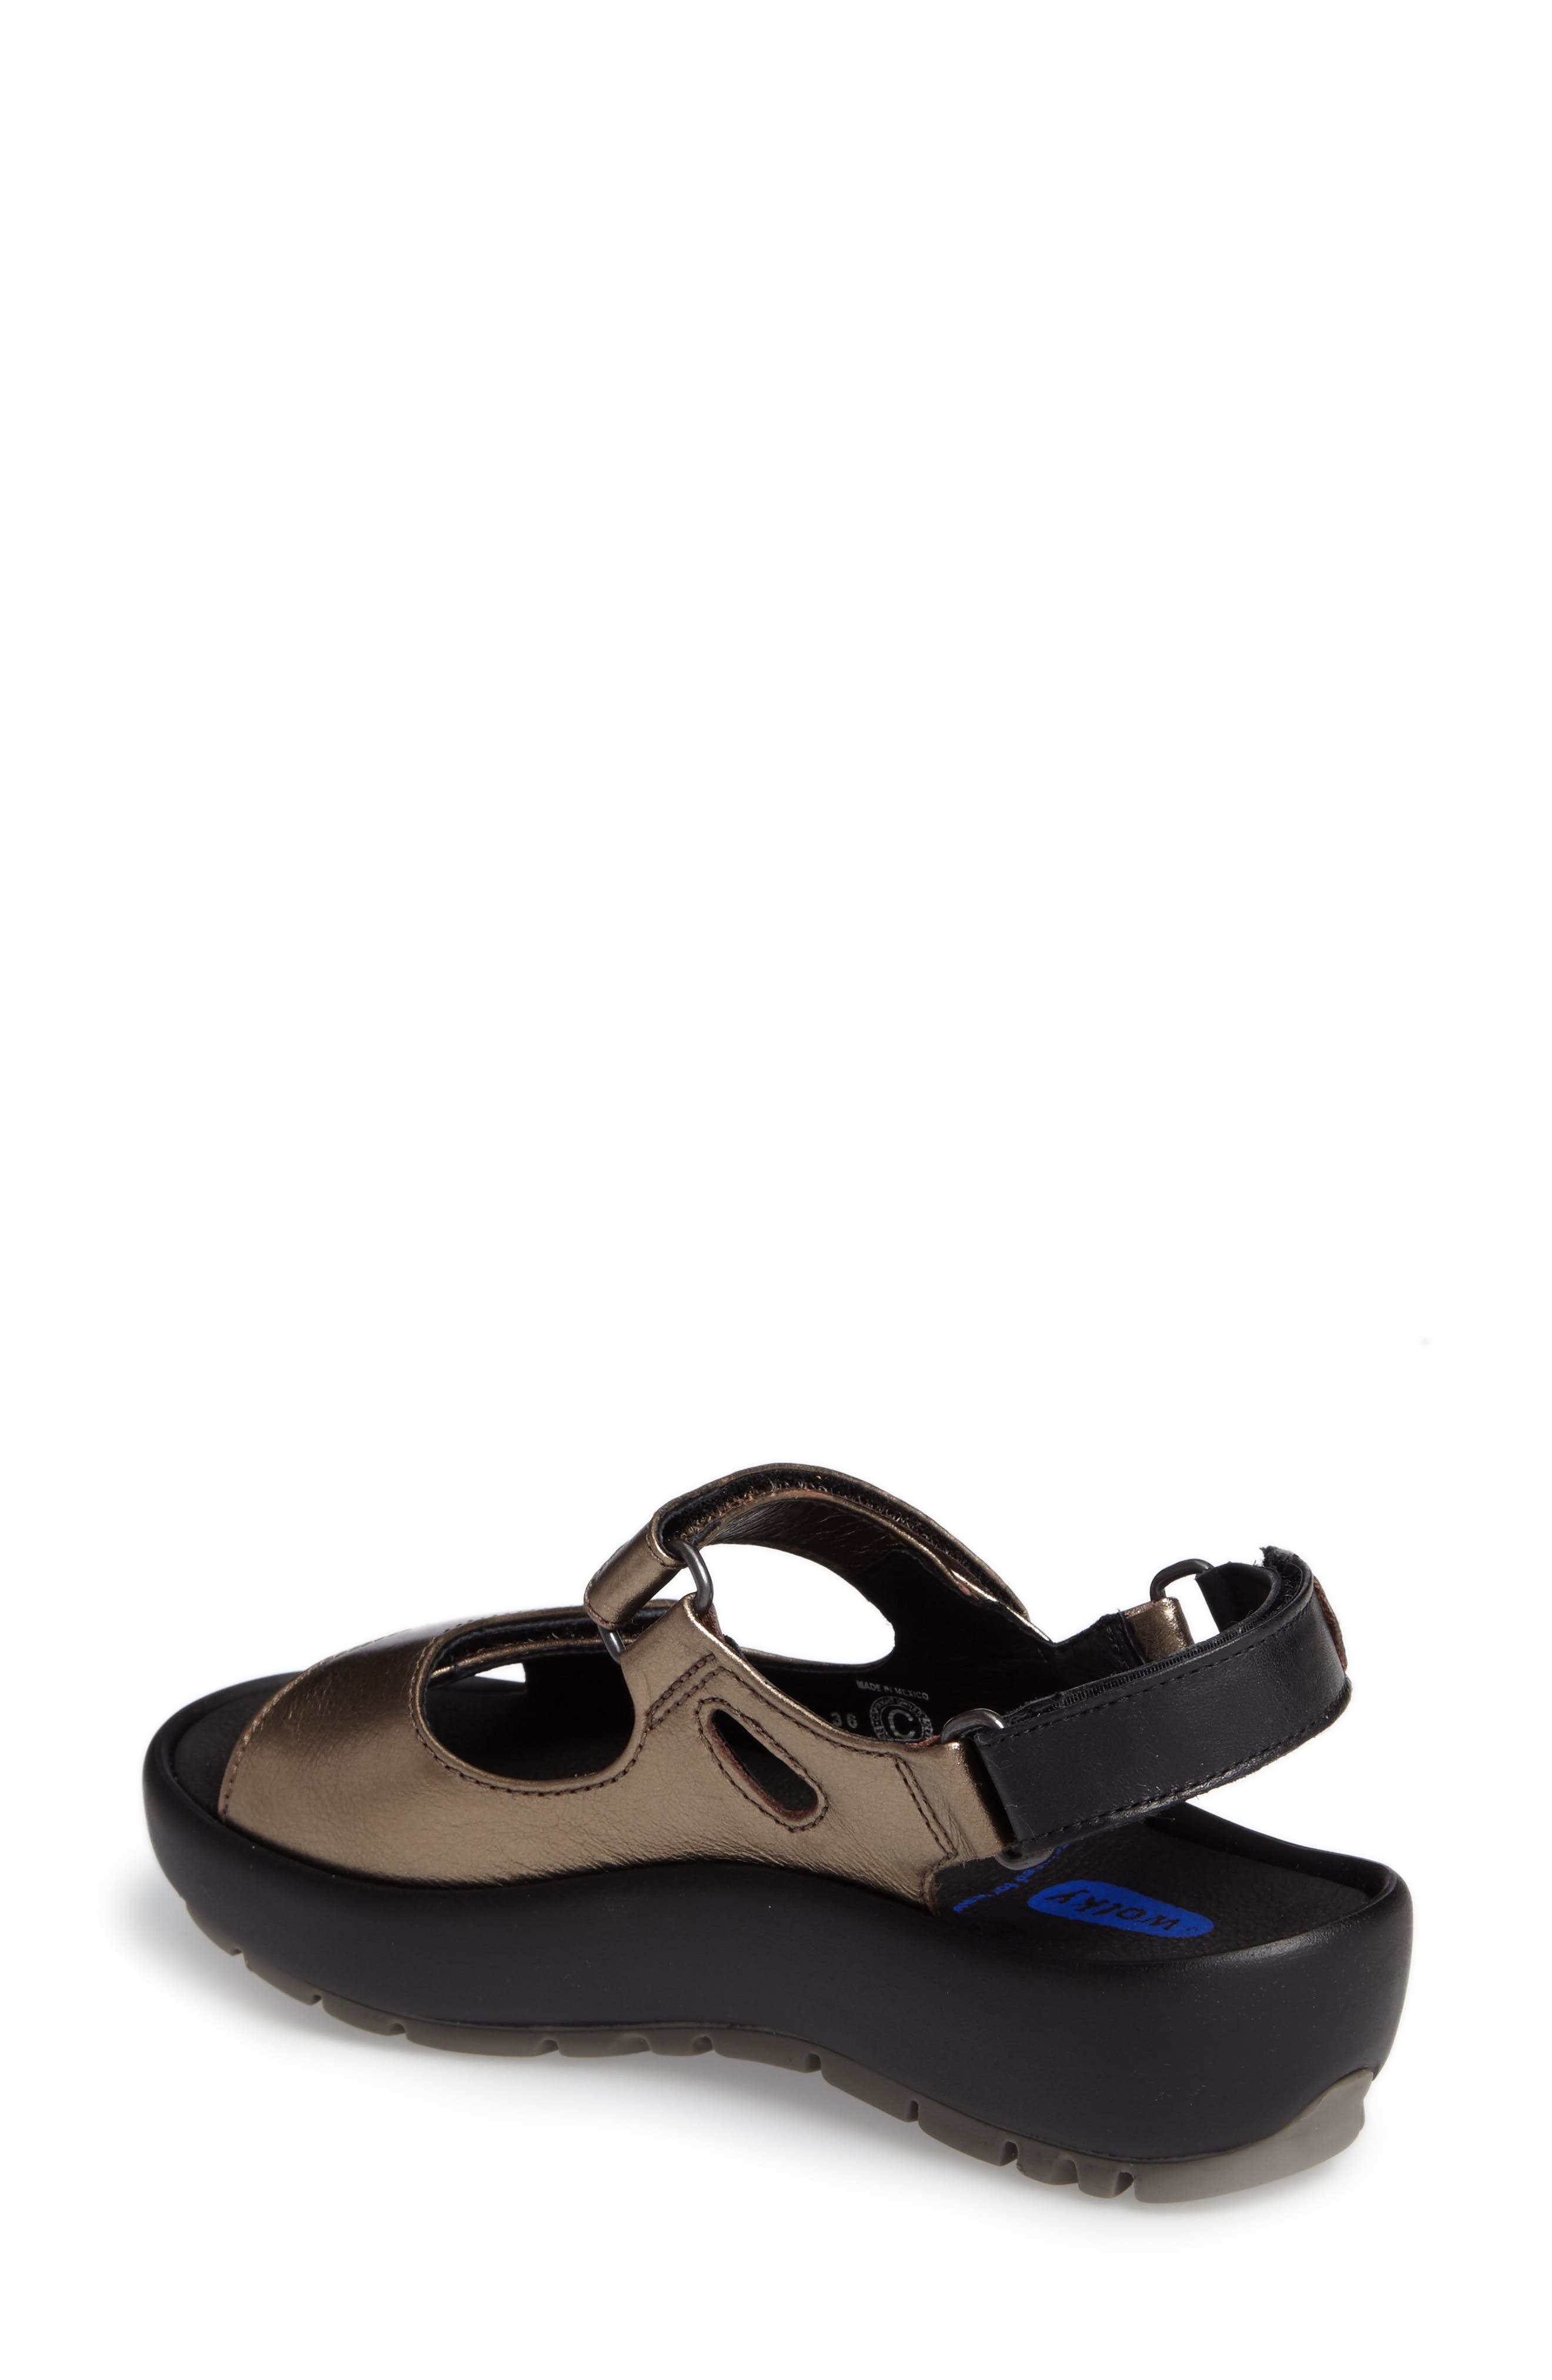 Rio Sandal,                             Alternate thumbnail 2, color,                             Bronze Metallic Leather